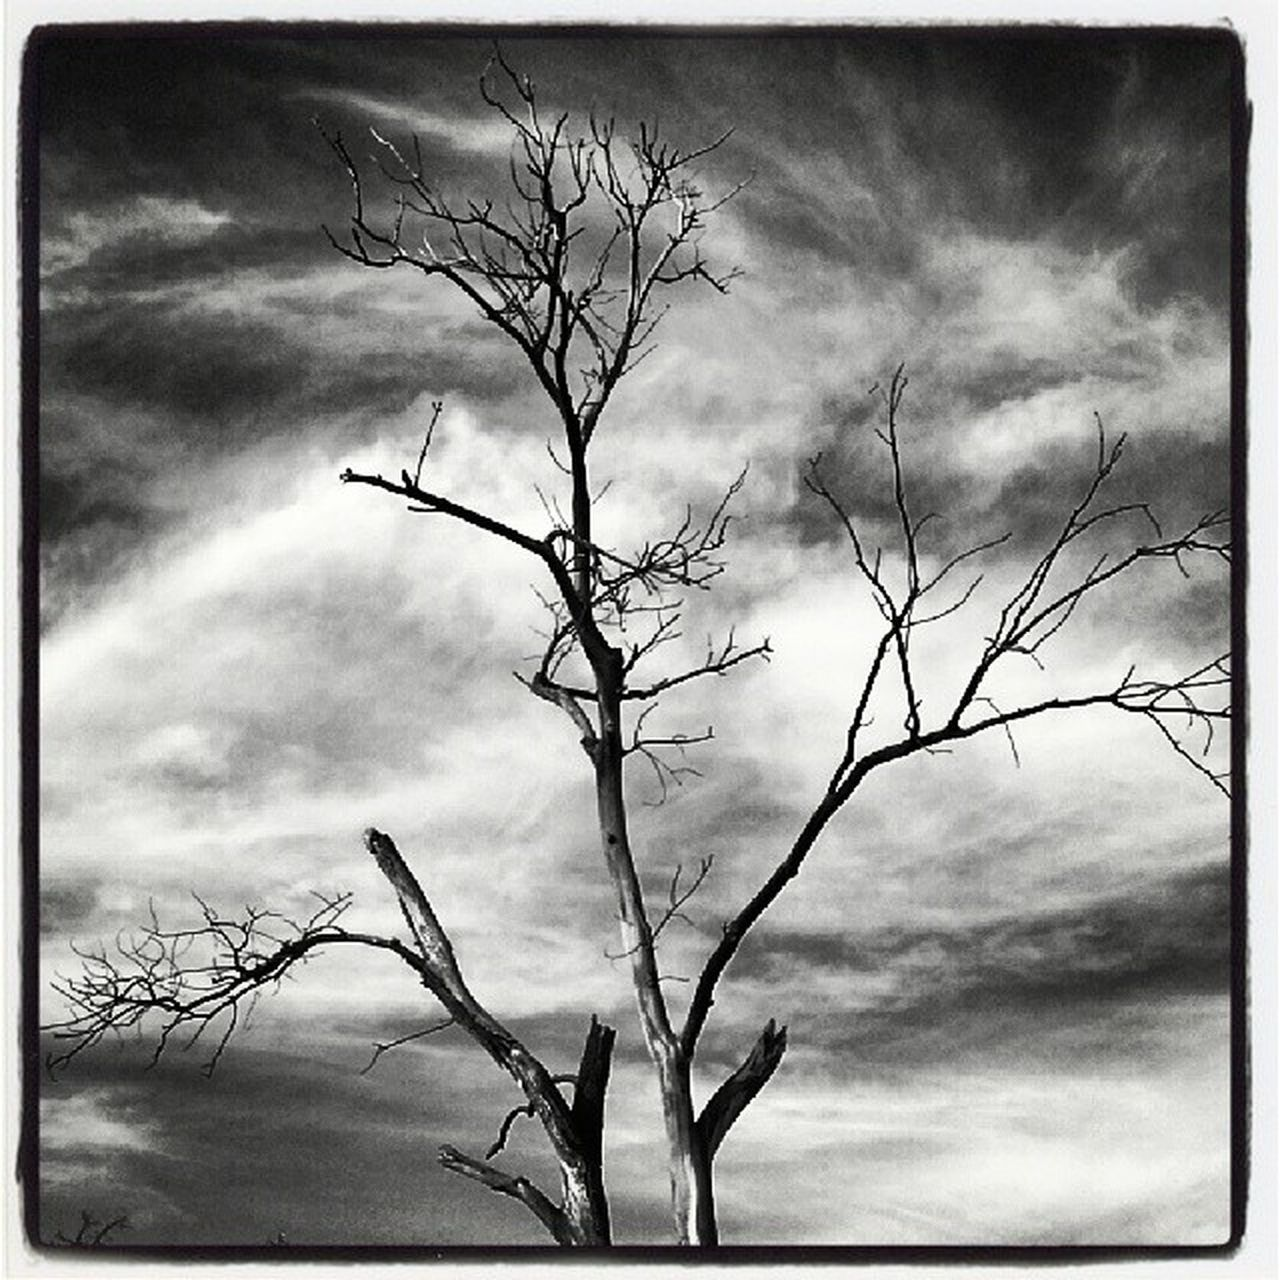 bare tree, branch, sky, tree, nature, outdoors, lone, tranquility, day, no people, silhouette, low angle view, beauty in nature, scenics, dead tree